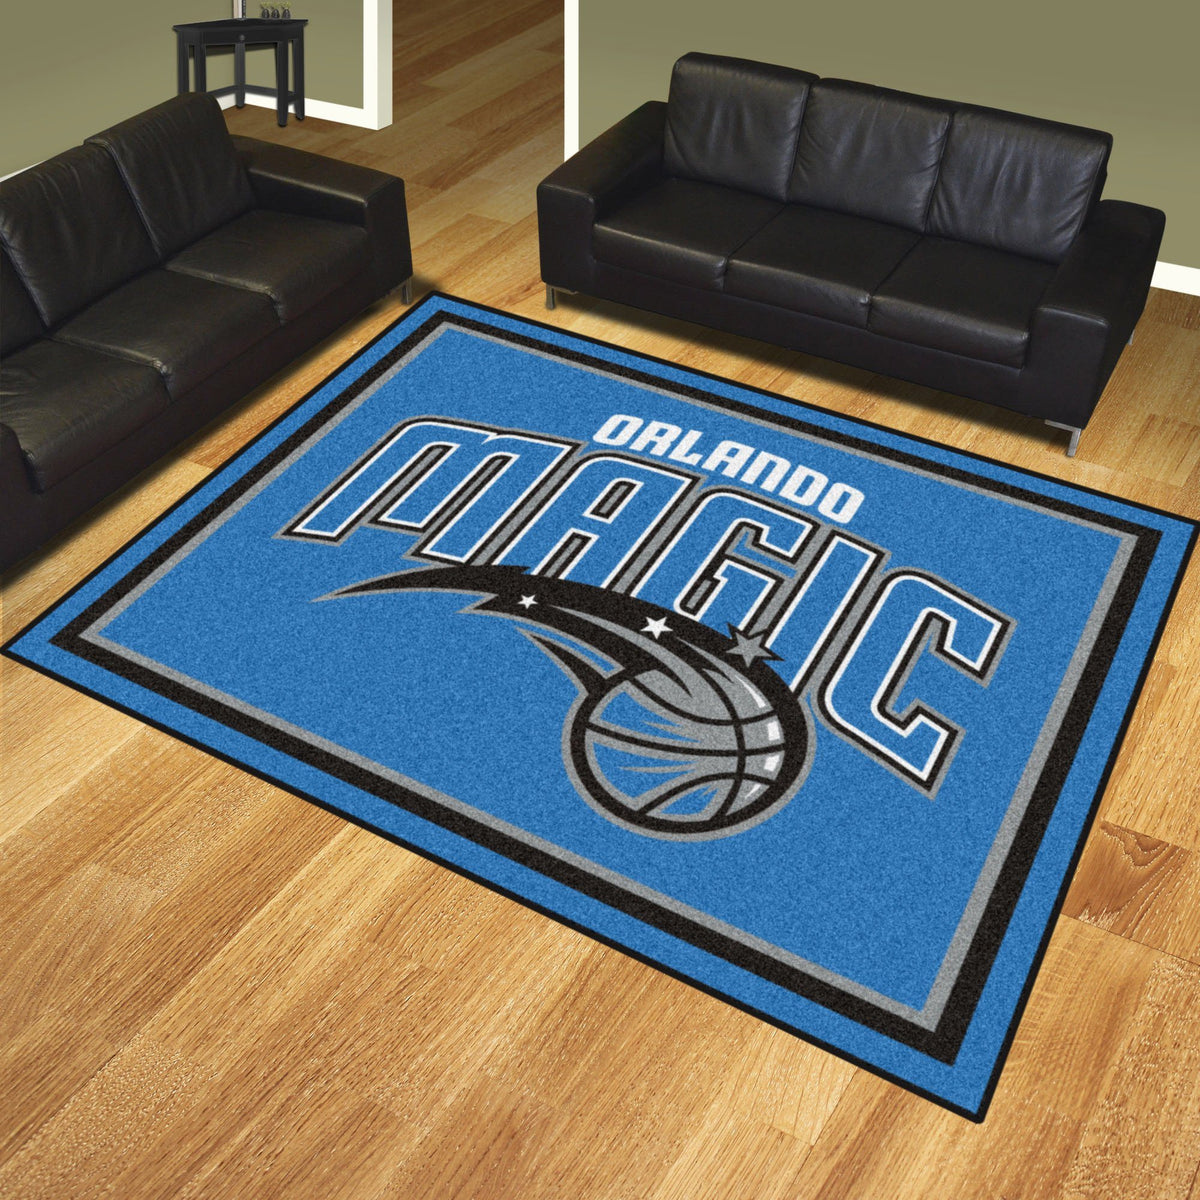 NBA - 8' x 10' Rug NBA Mats, Plush Rugs, 8x10 Rug, NBA, Home Fan Mats Orlando Magic